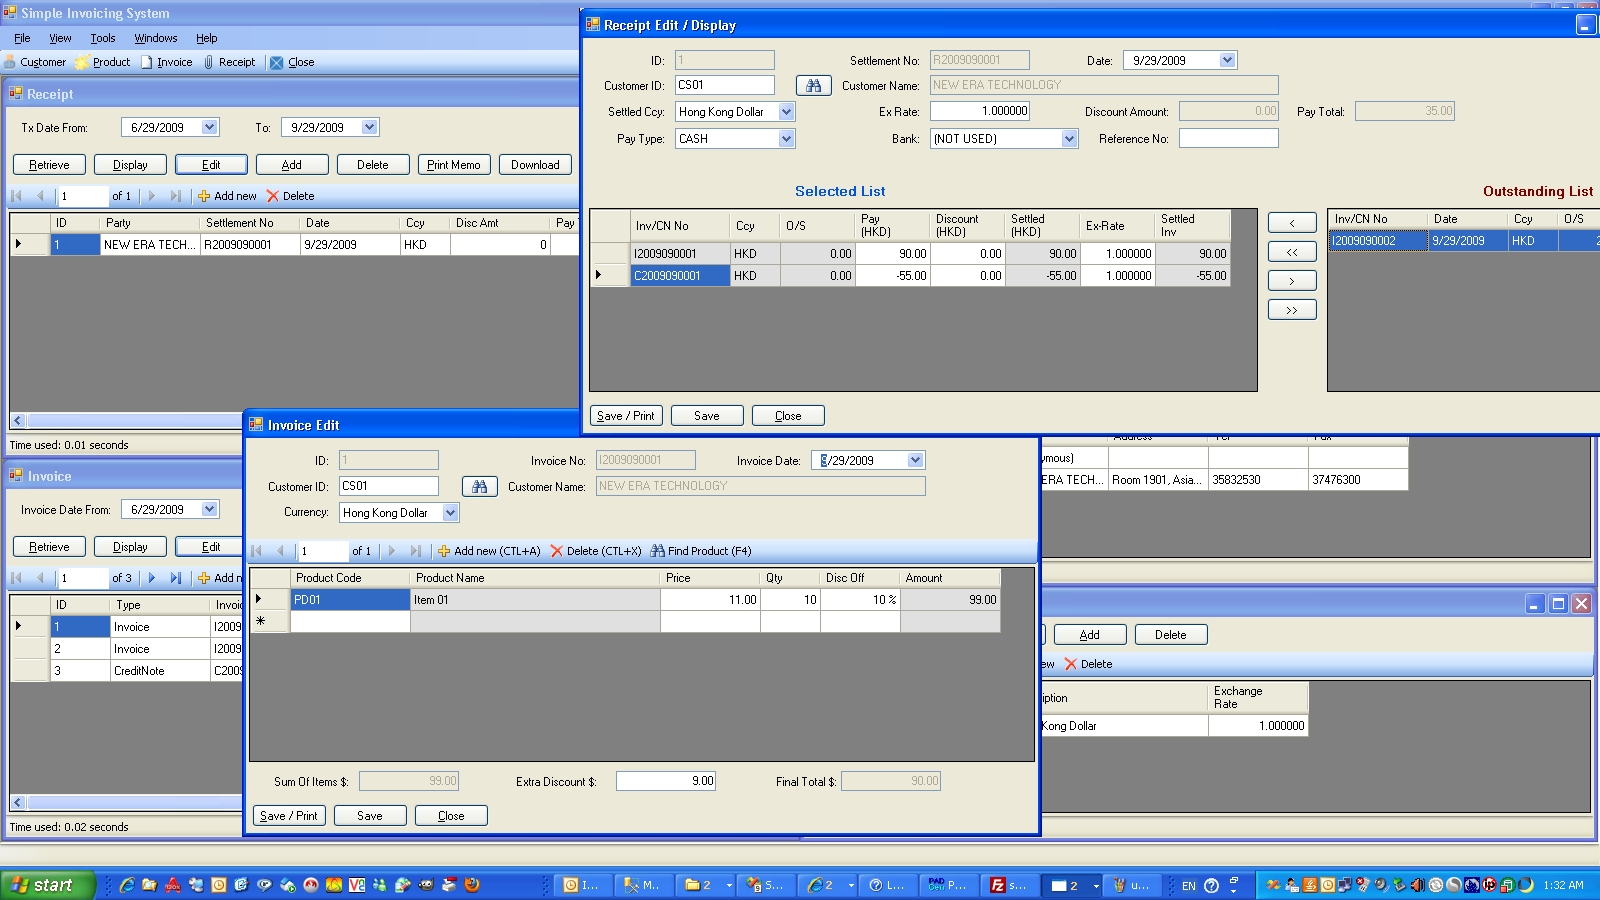 download free simple invoice simple invoice 1209 download invoice management software free